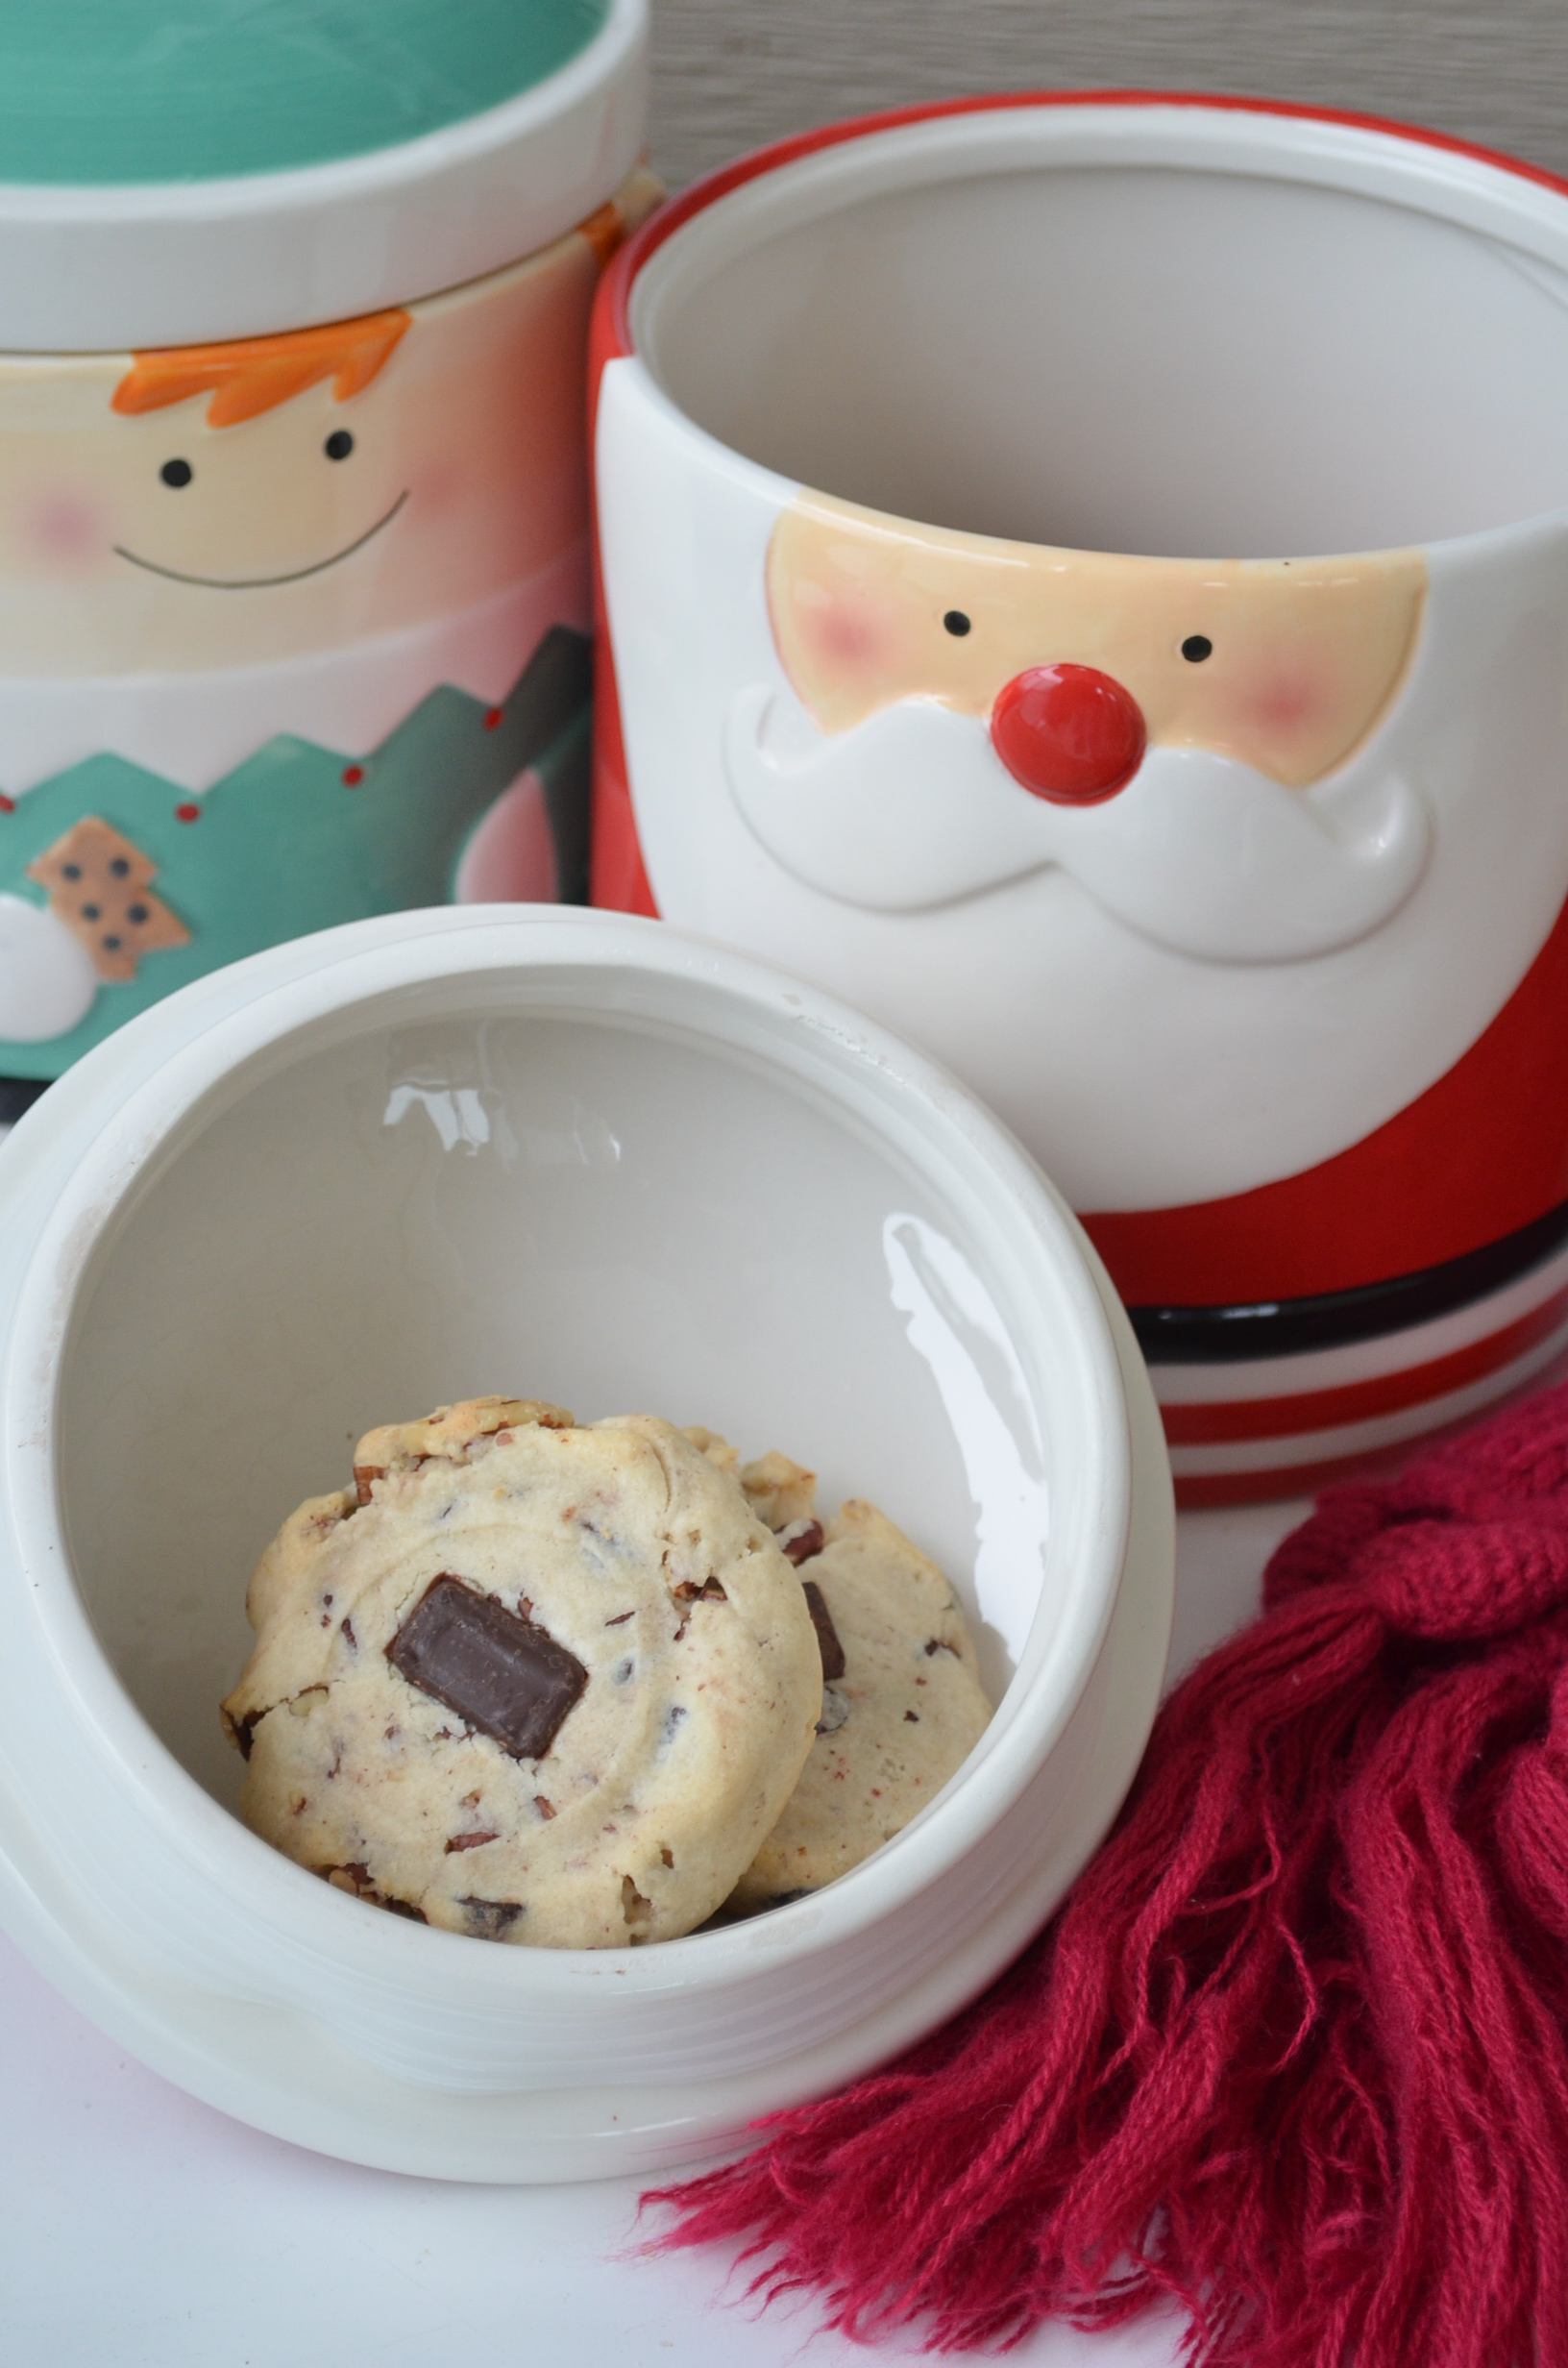 How to store cookies